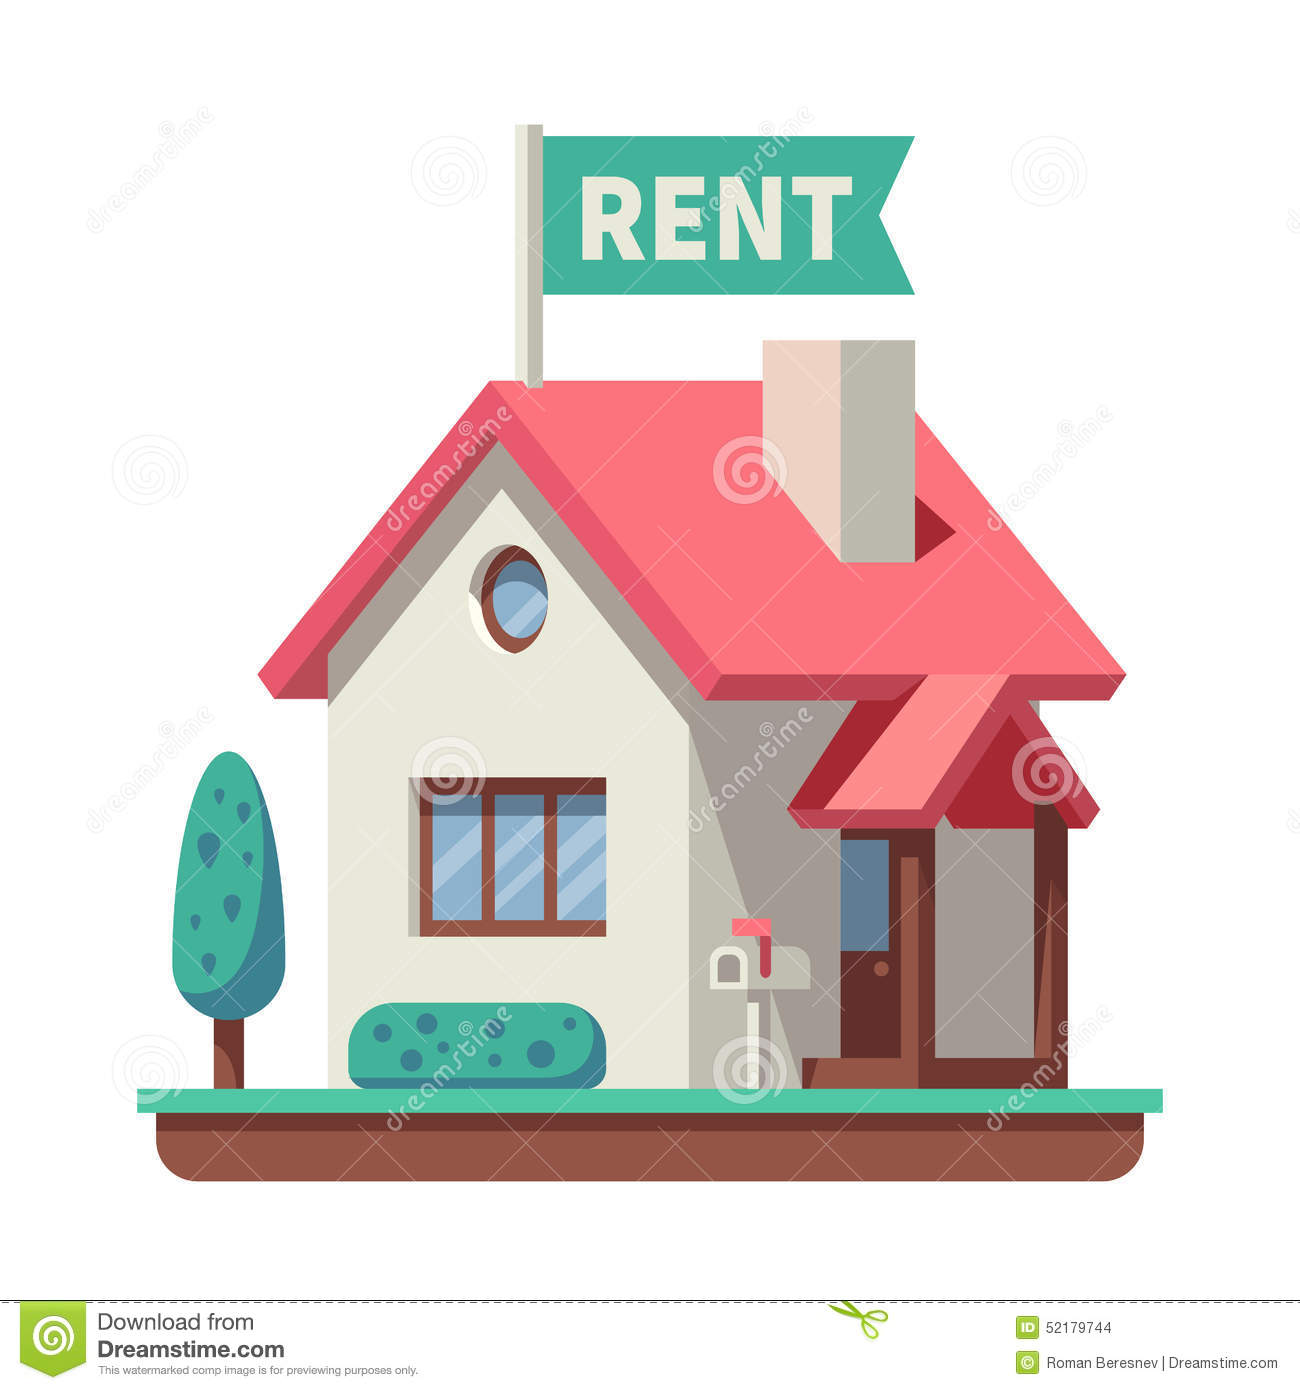 Rent House Apartment: House For Rent Stock Vector. Illustration Of Graphic